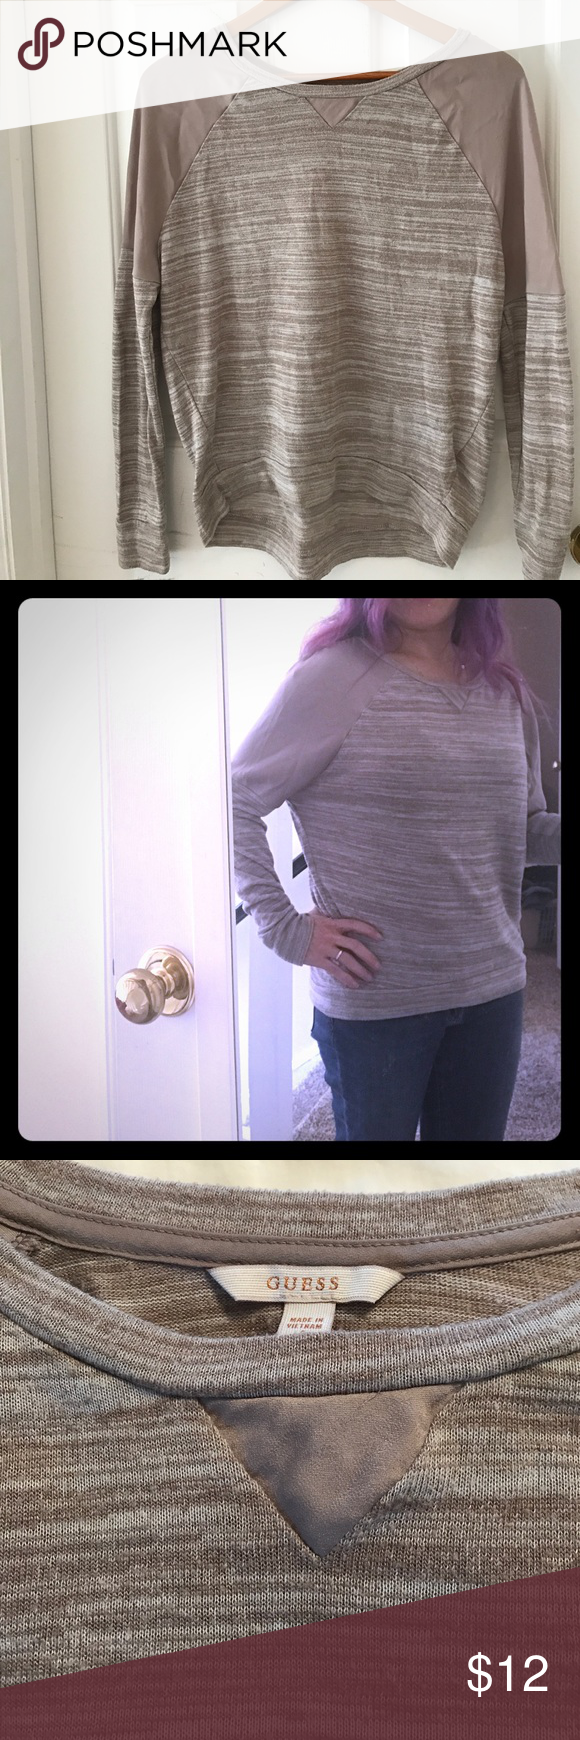 Guess pullover sweater / shirt Super cute tan / brown light knit sweater with silk like detail on shoulders and collar. Guess Sweaters Crew & Scoop Necks